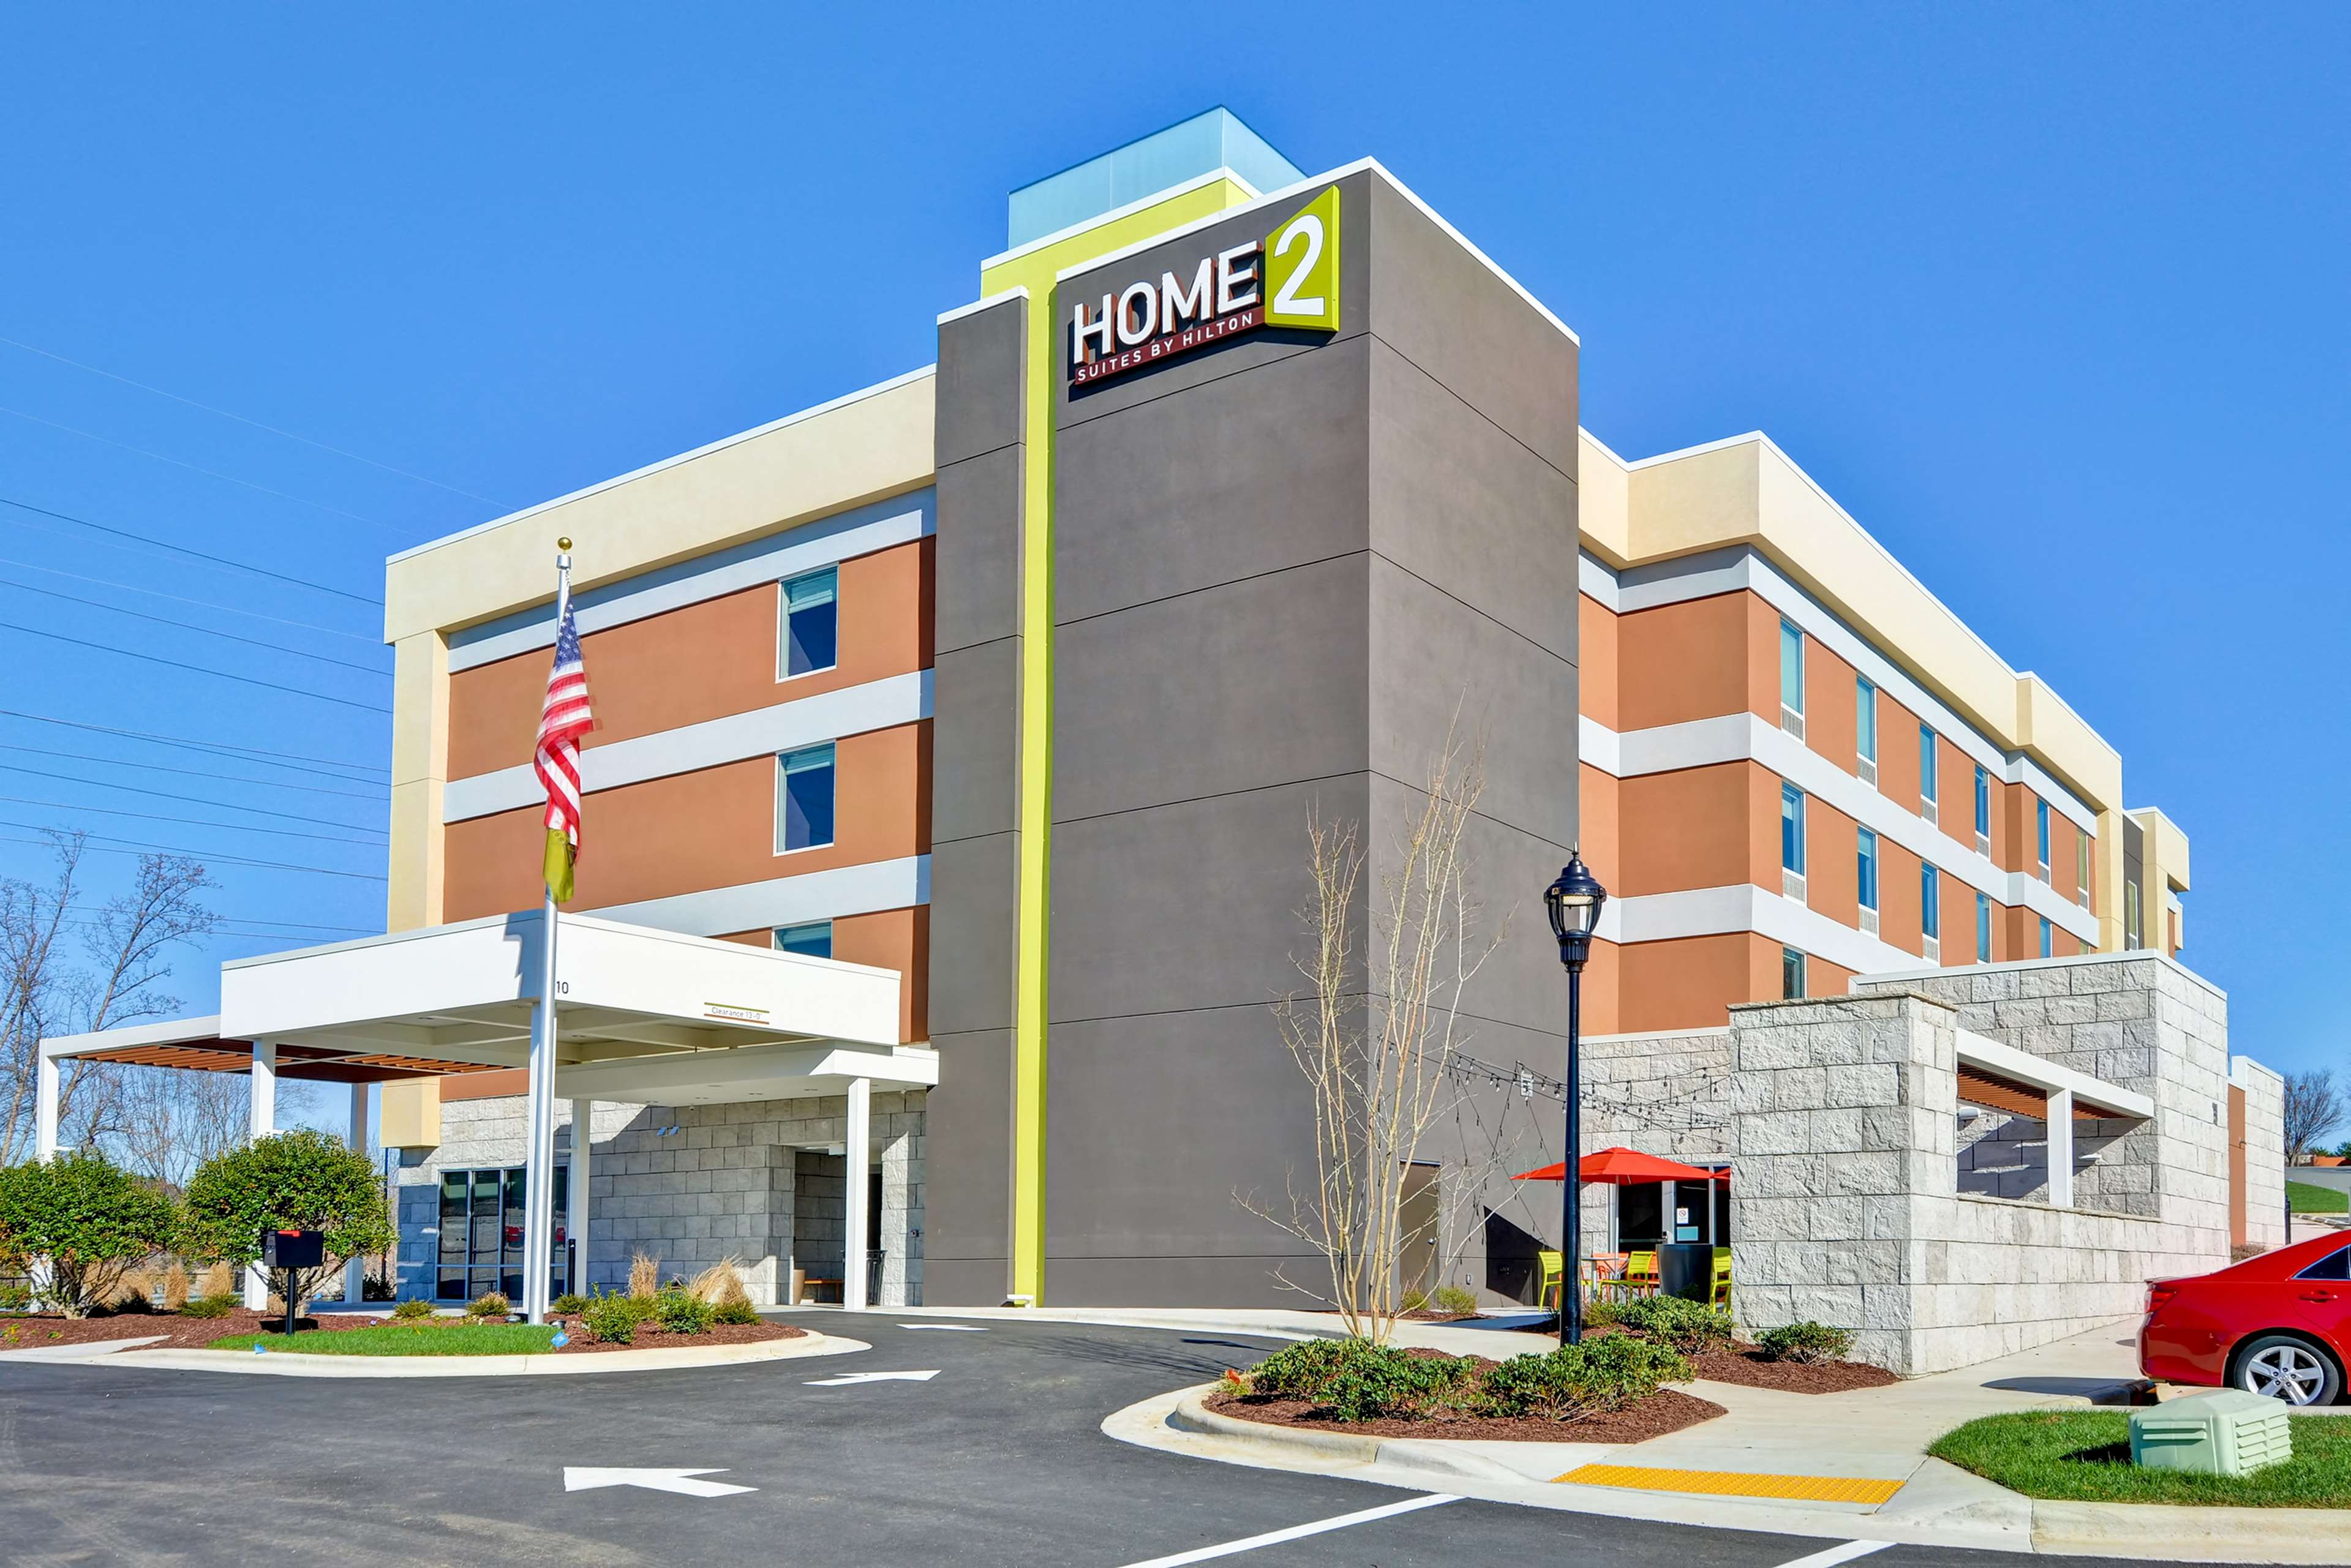 Home2 Suites by Hilton Winston-Salem Hanes Mall image 0